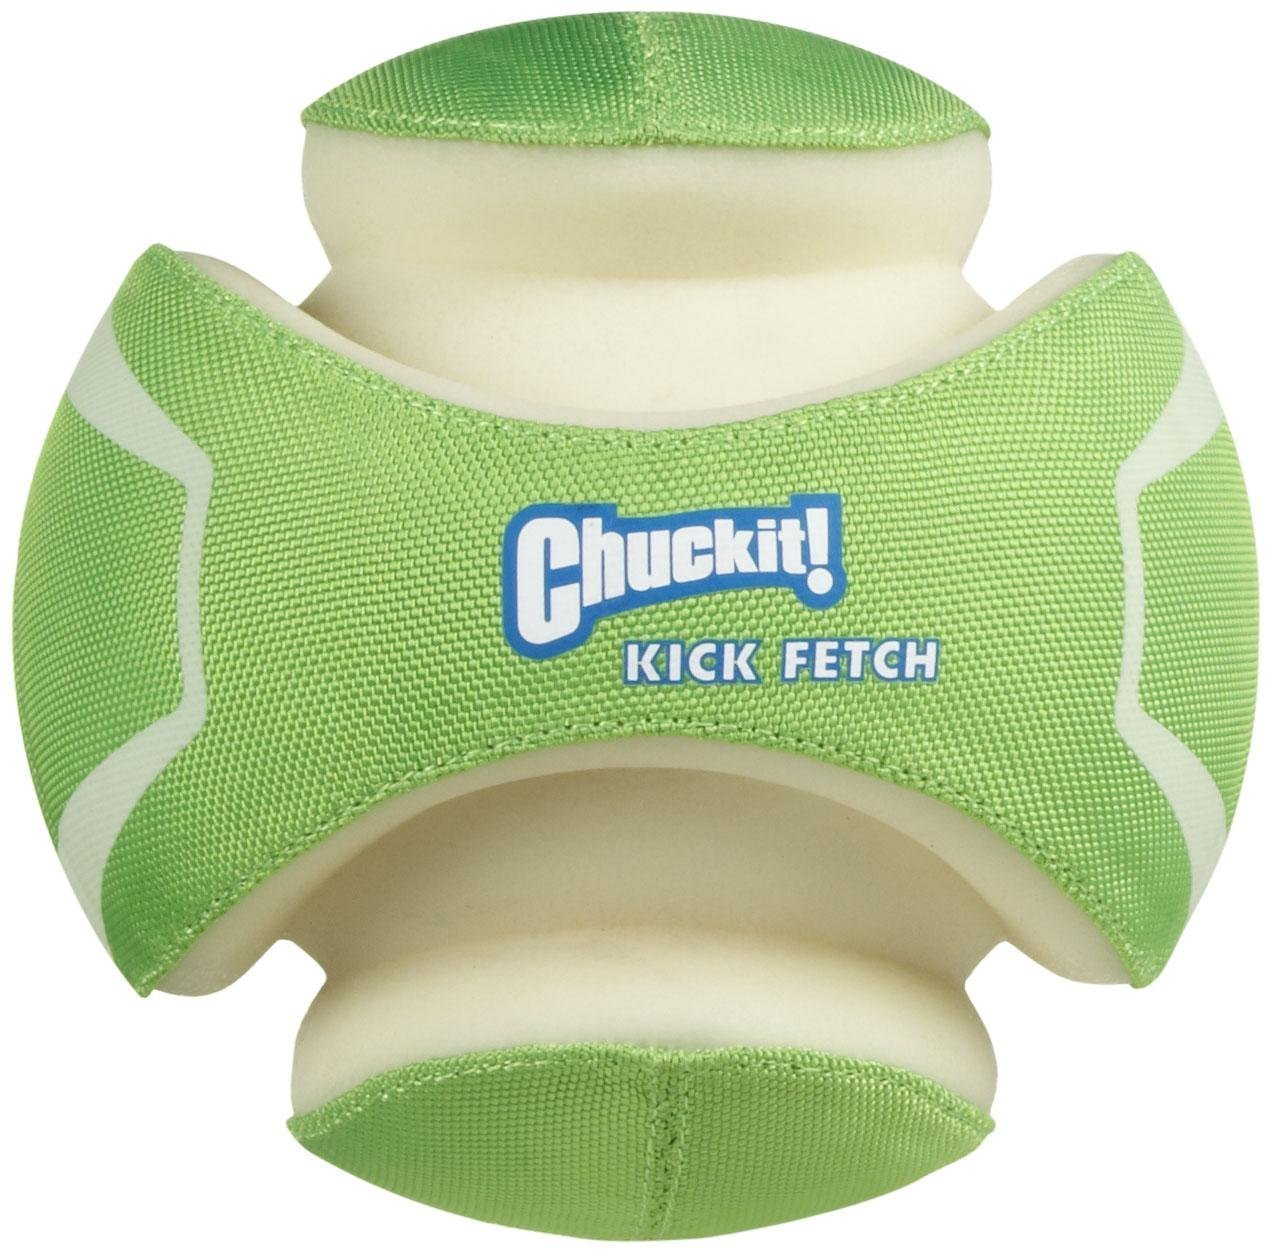 Canine Hardware 32300 Chuckit Kick Fetch Max Glow Large